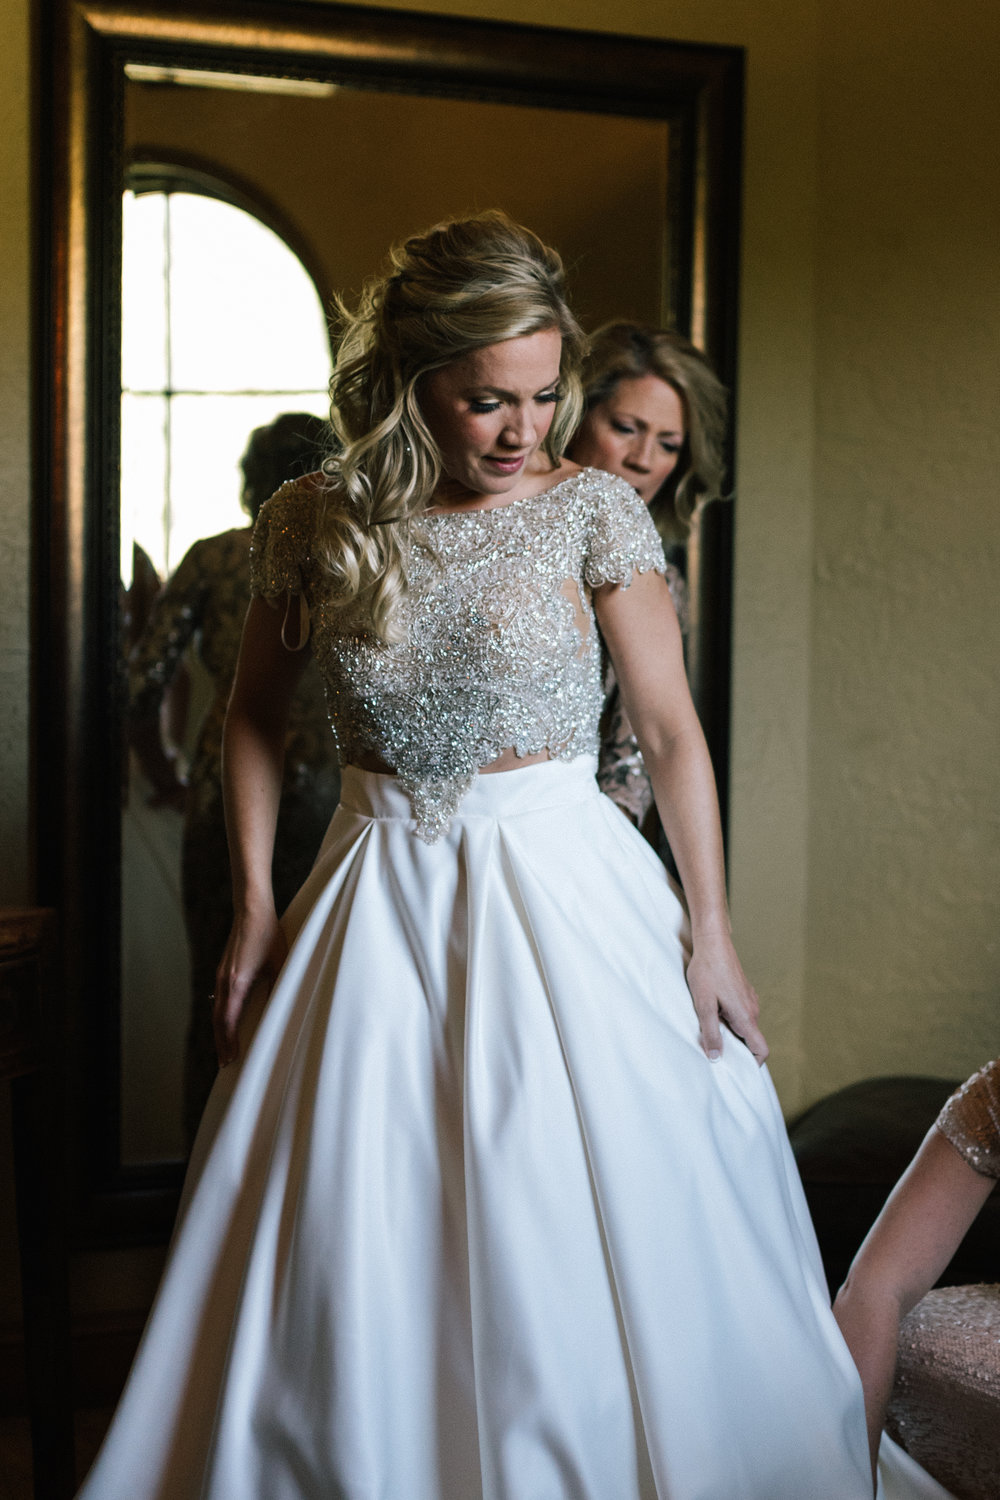 alyssa barletter photography big cedar lodge integrity hills fall wedding branson missouri-7.jpg